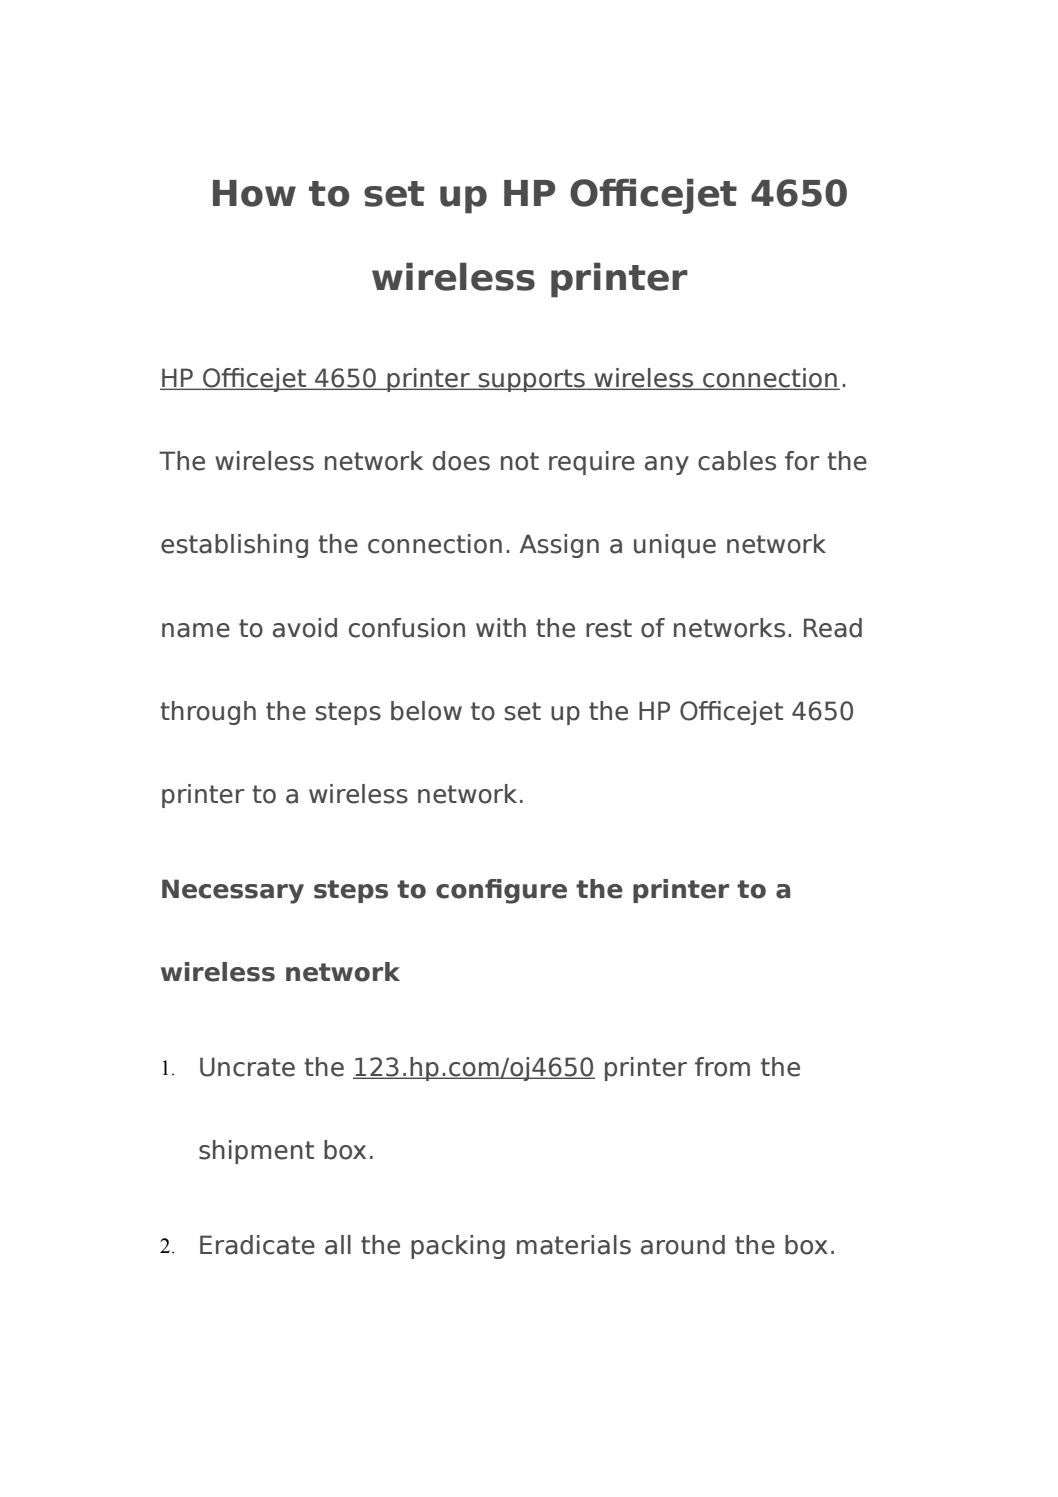 How to setup hp officejet 4650 wireless printer by sandra